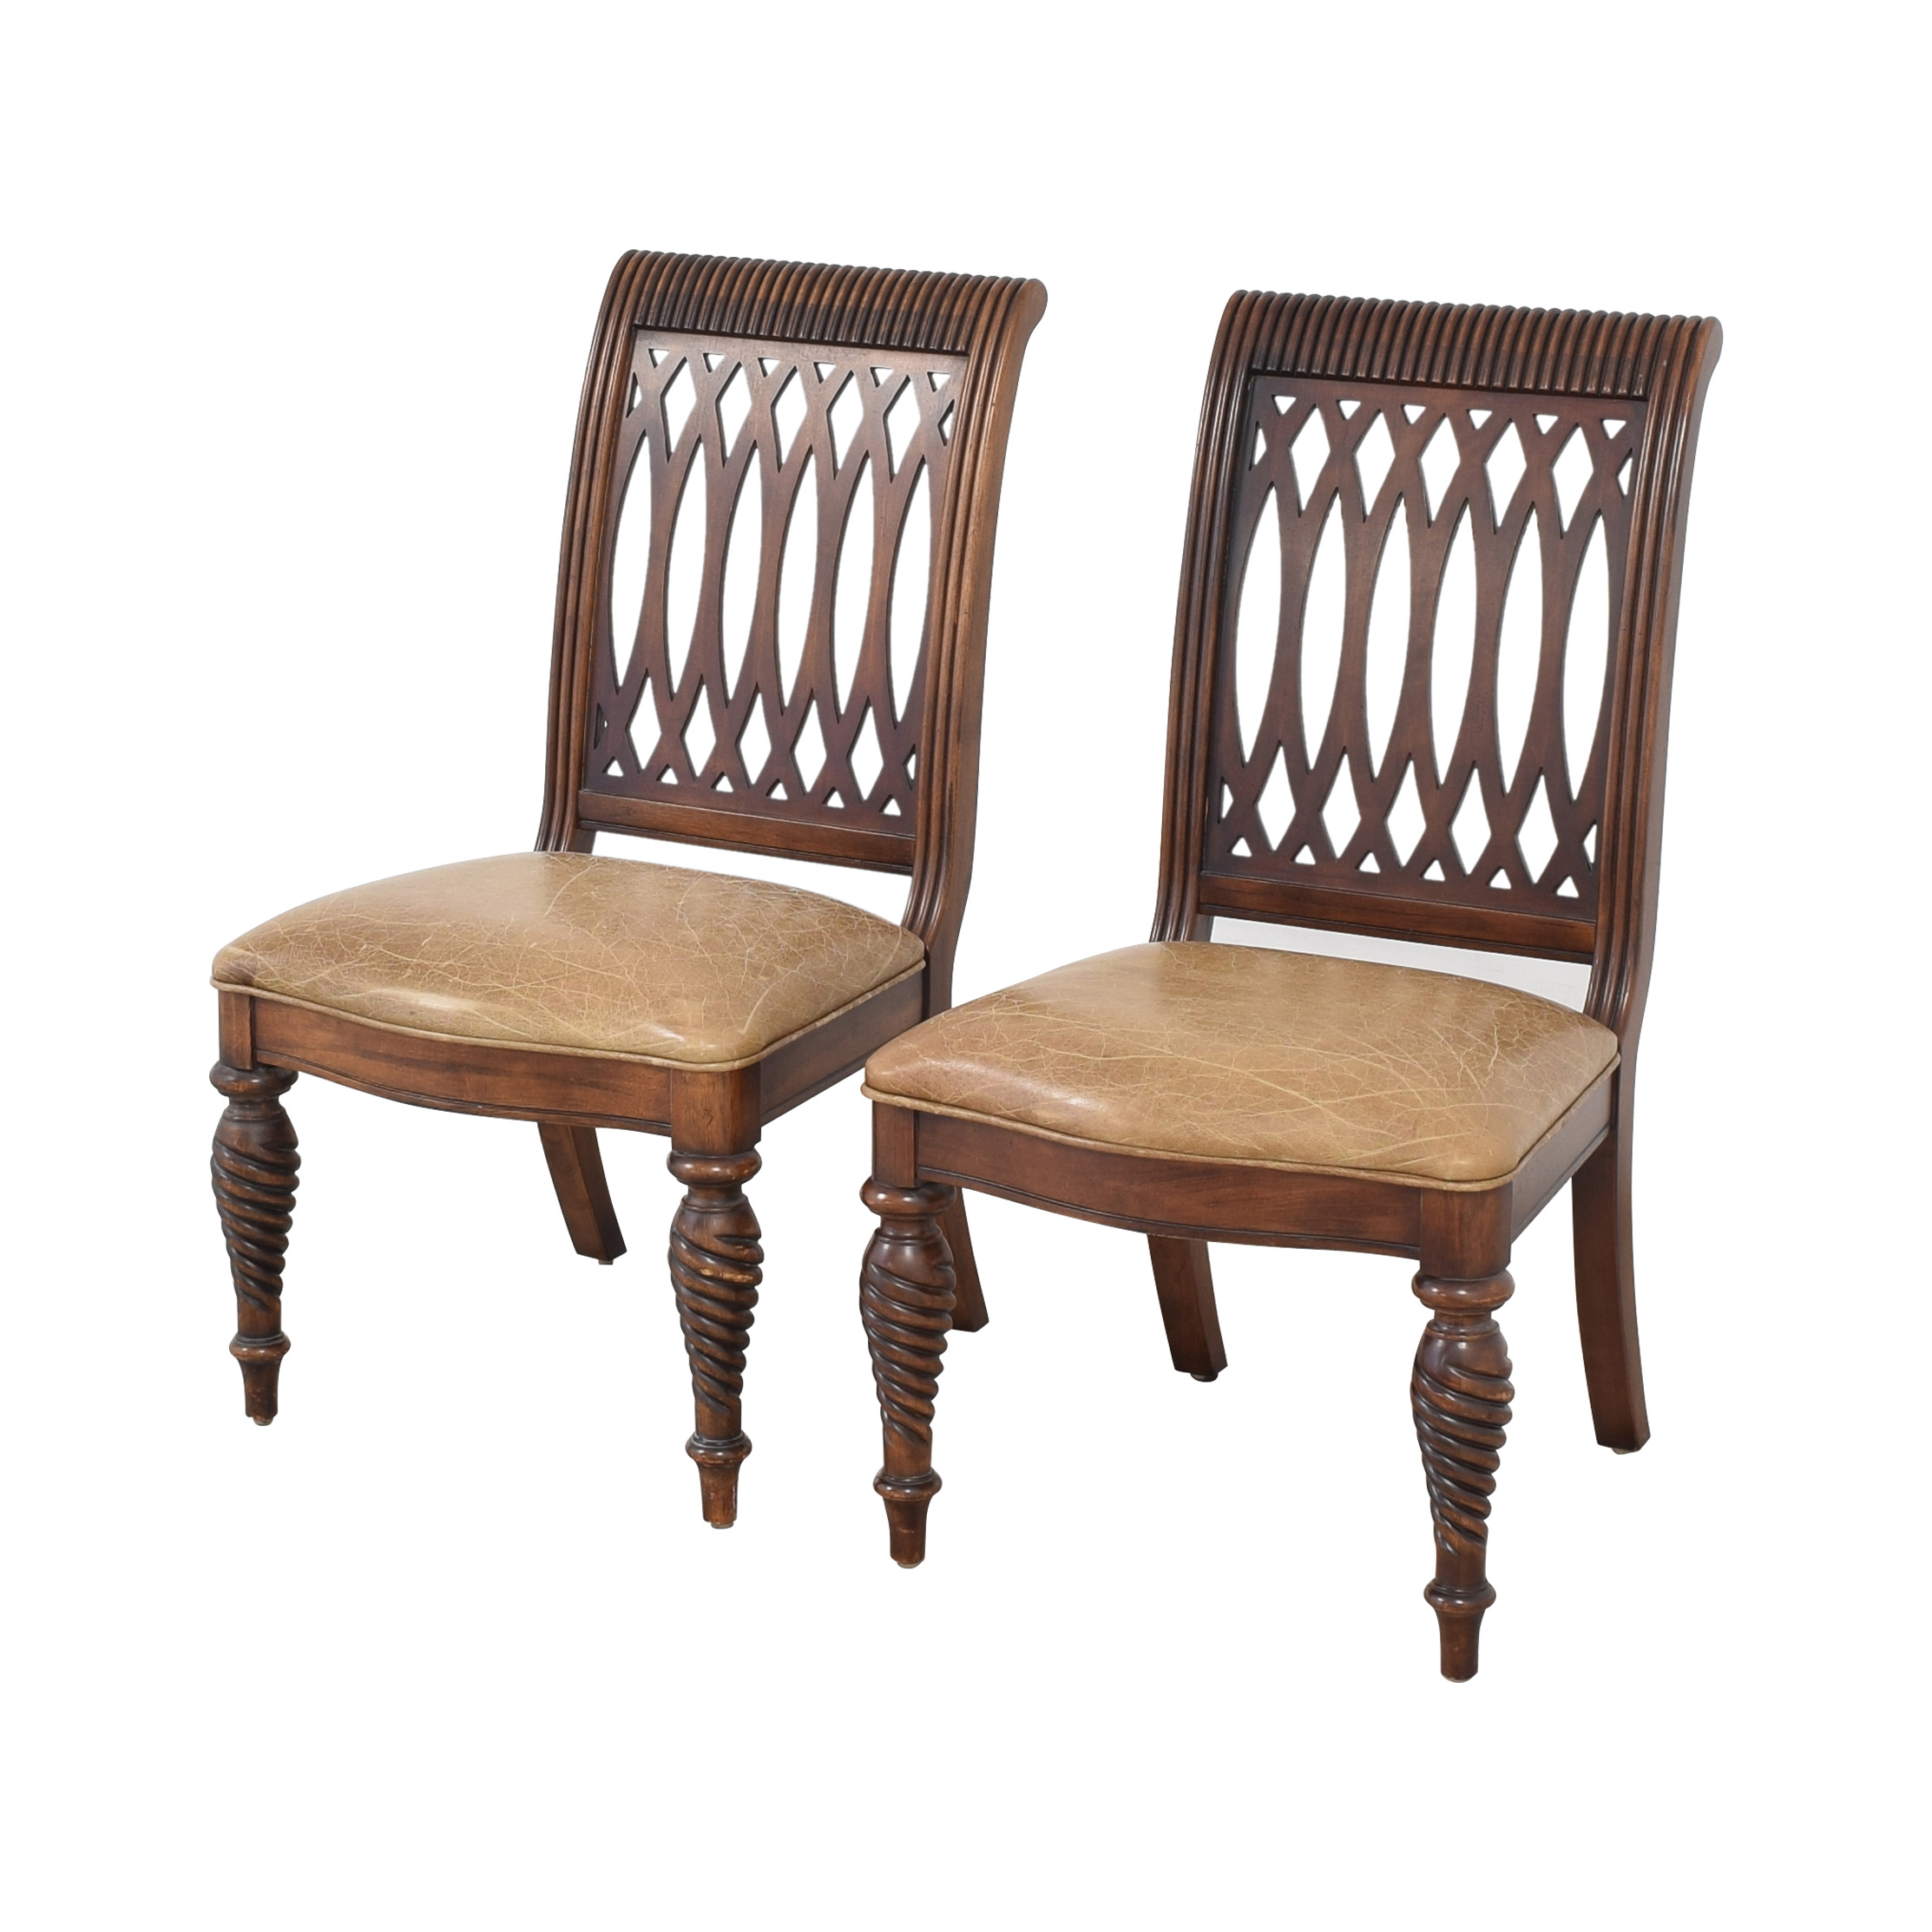 buy Bernhardt Bernhardt Upholstered Dining Chairs online